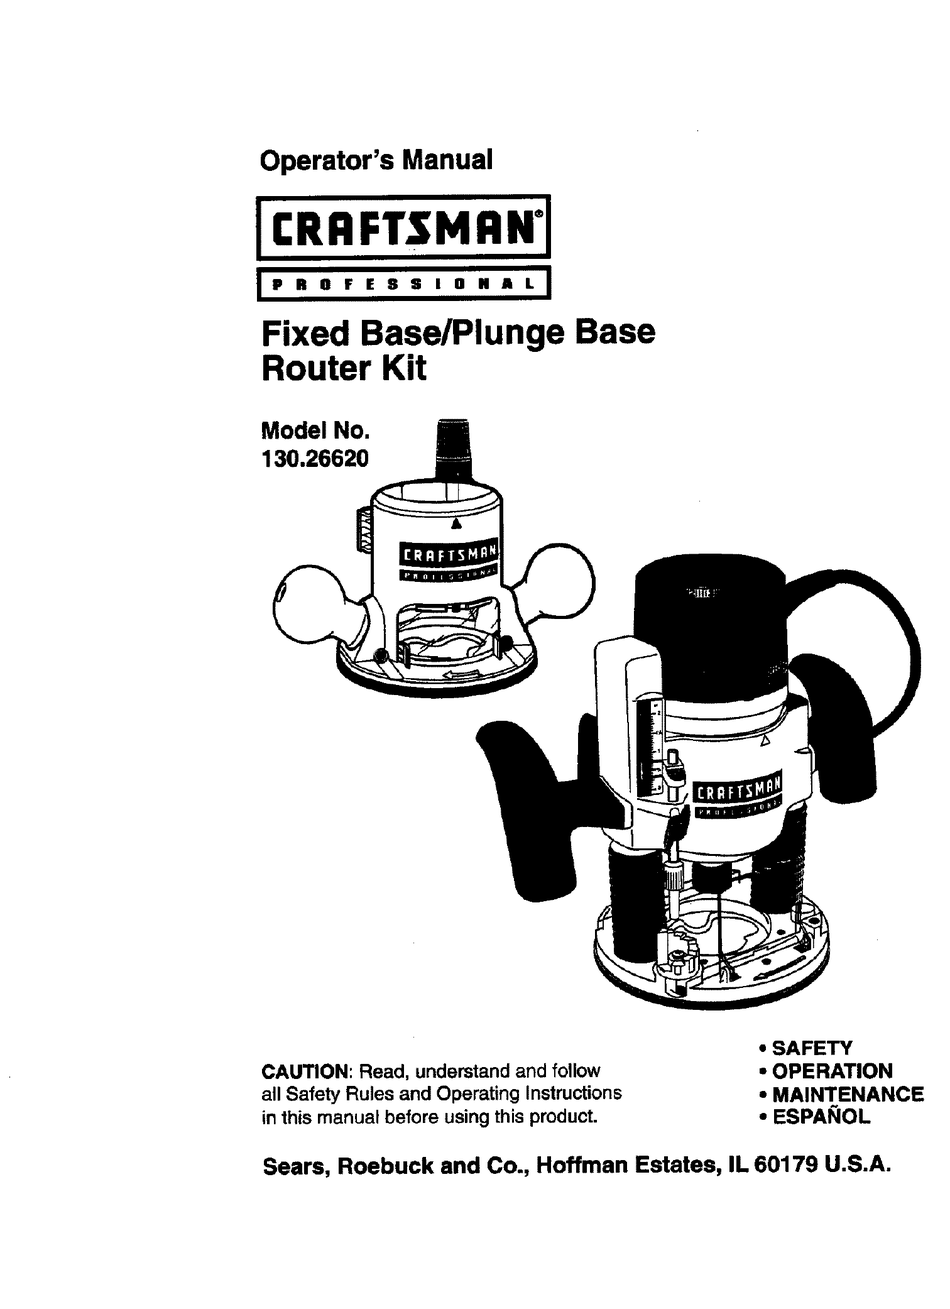 CRAFTSMAN 130.26620 OPERATOR'S MANUAL Pdf Download